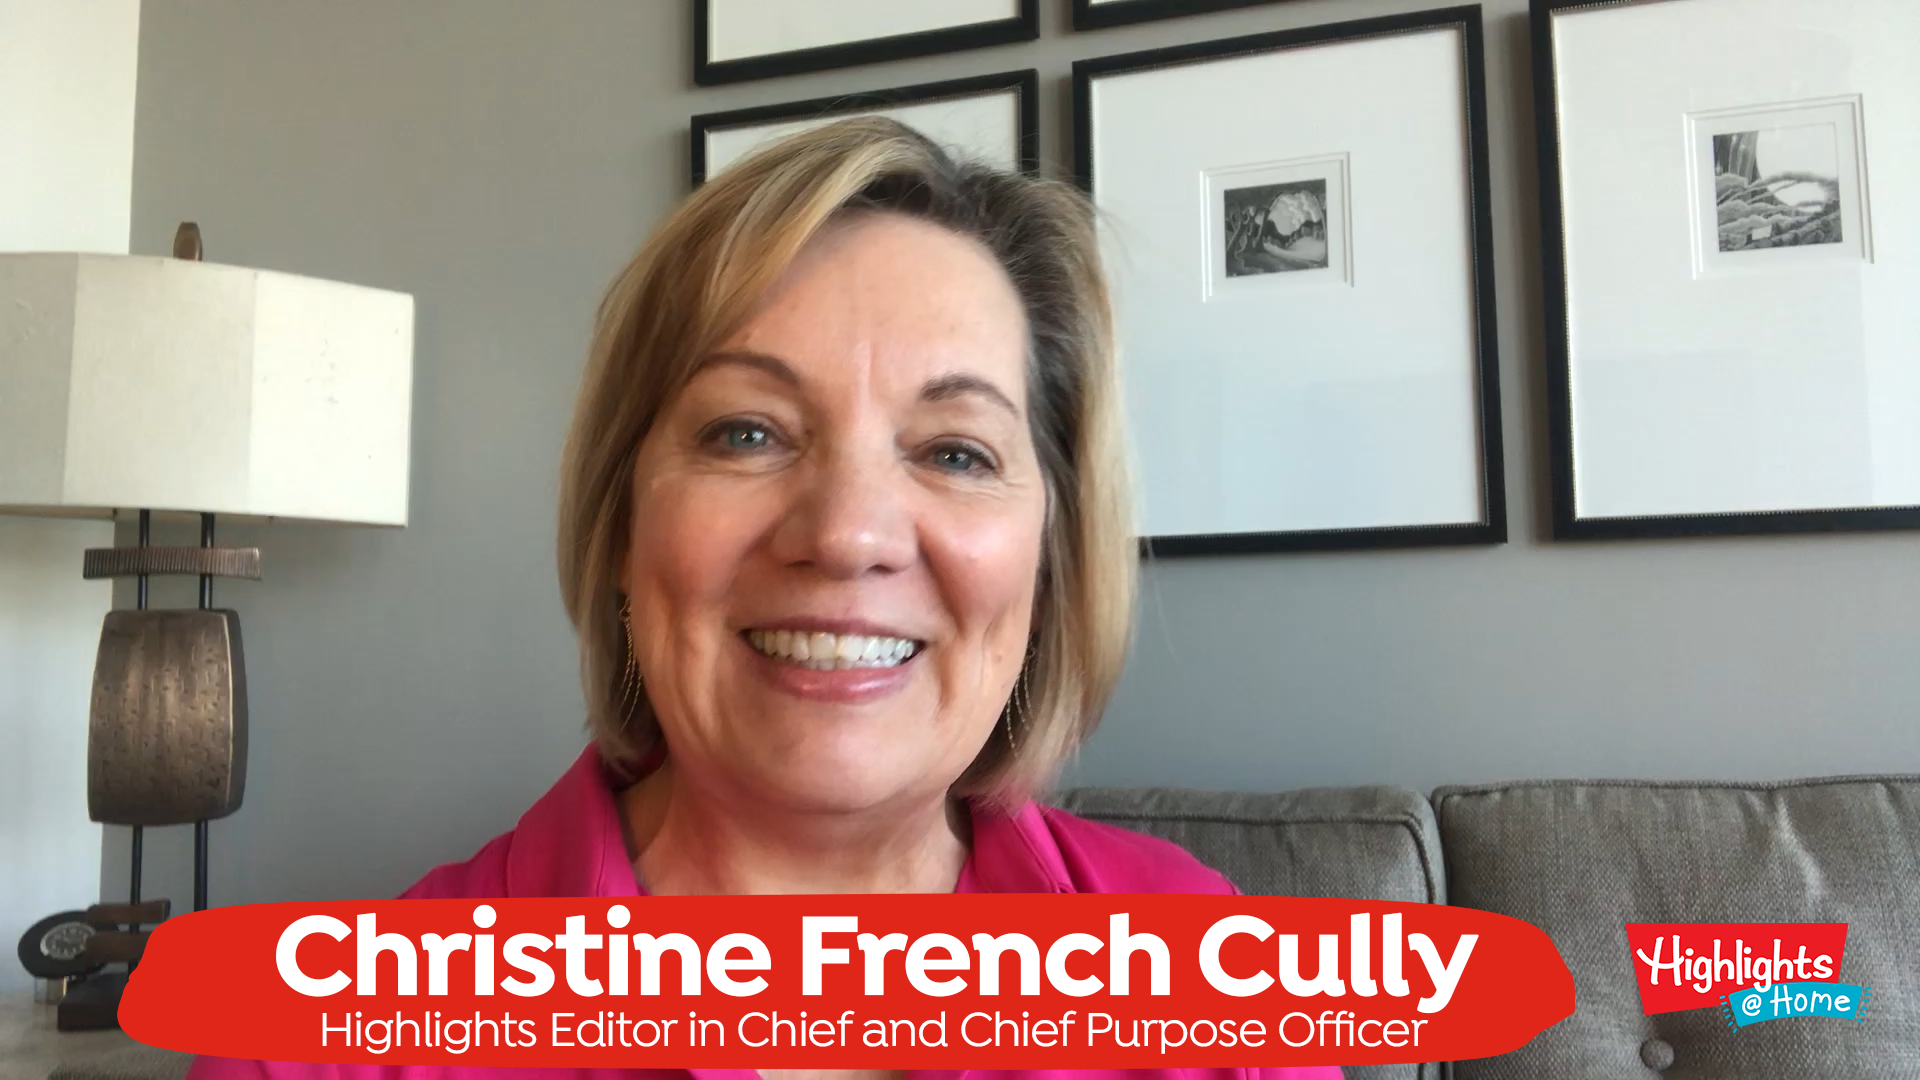 Christine French Cully